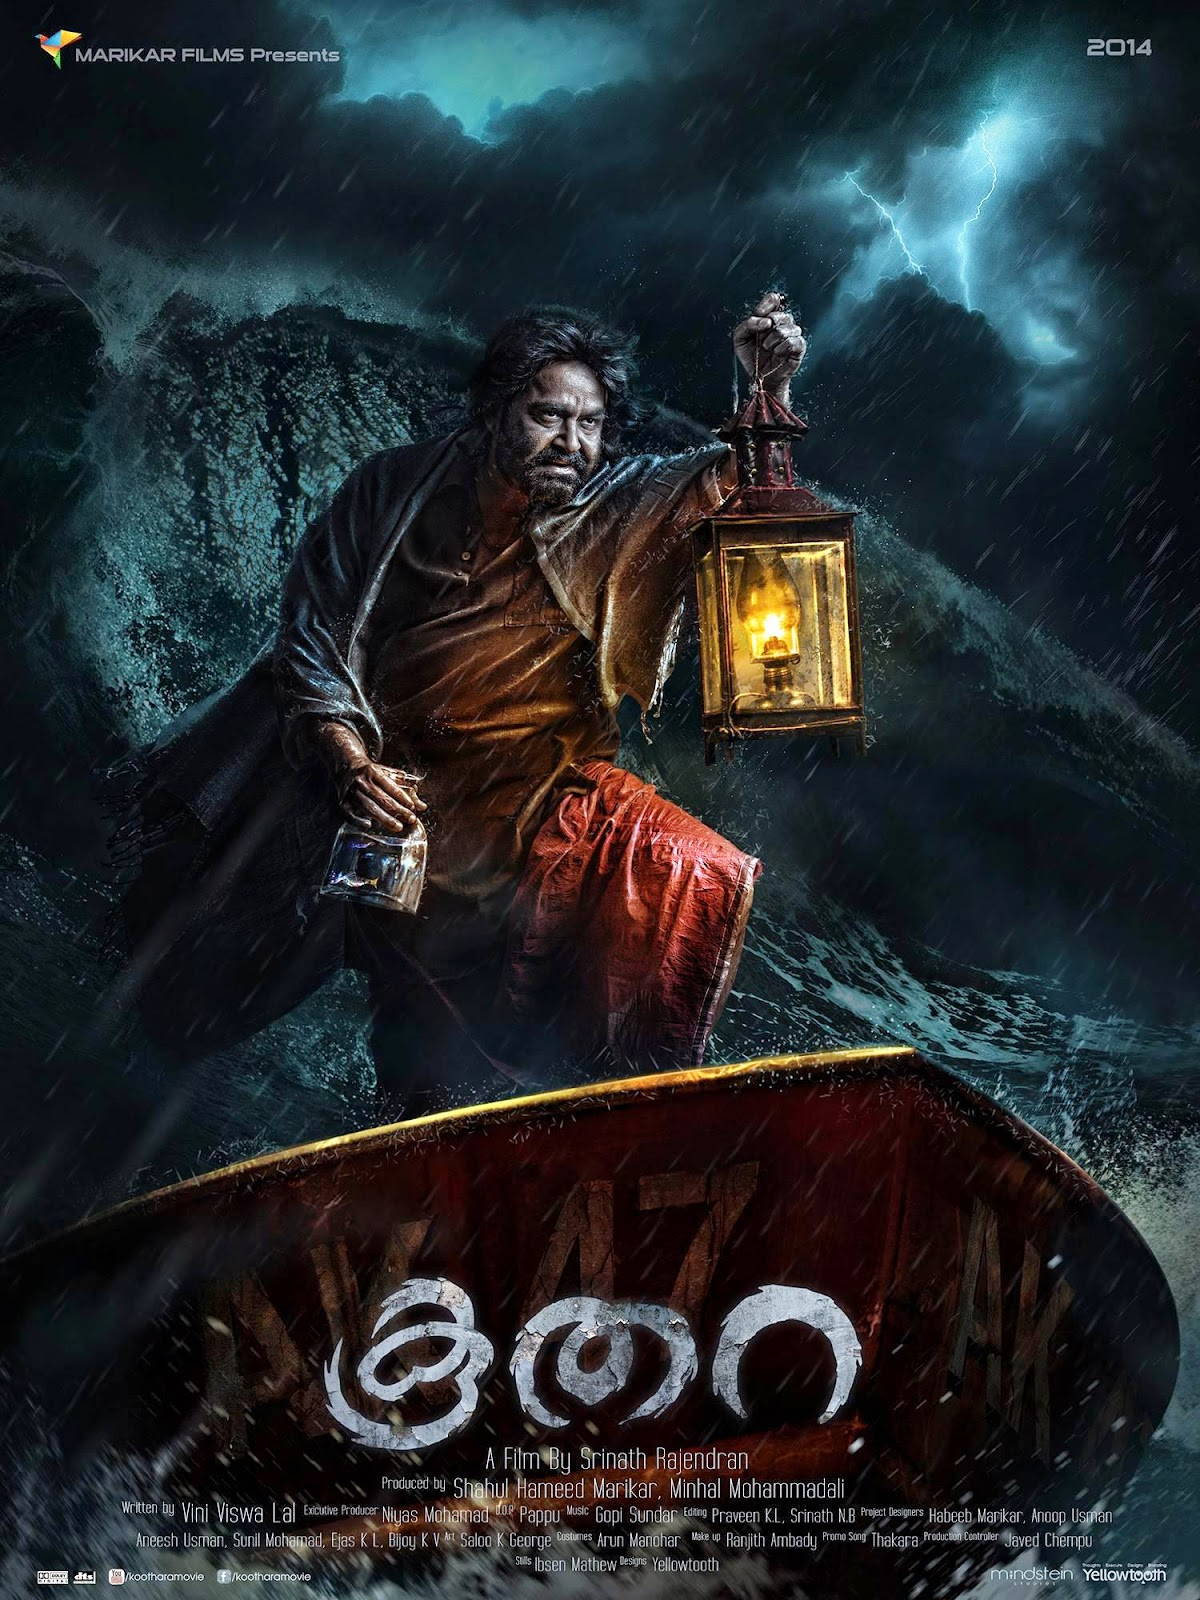 Watch Koothara (2014) DVDScr Malayalam Full Movie Watch Online For Free Download